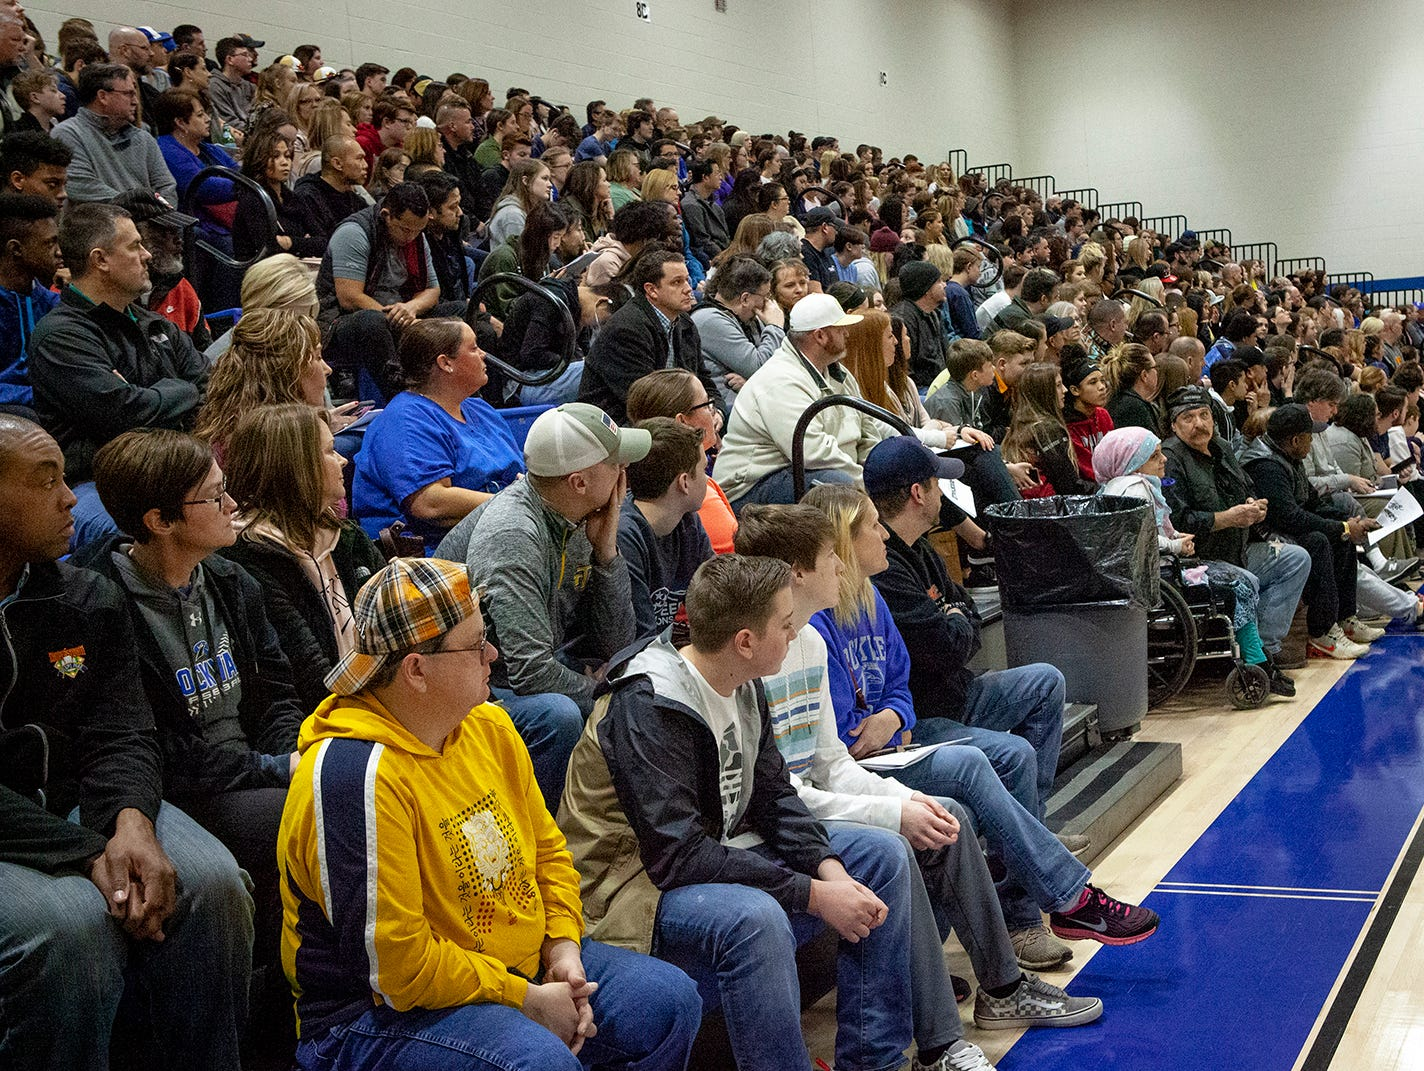 Rockvale High School open house was held March 7, 2019, at Rockvale Middle. It was a standing-room-only crowd.